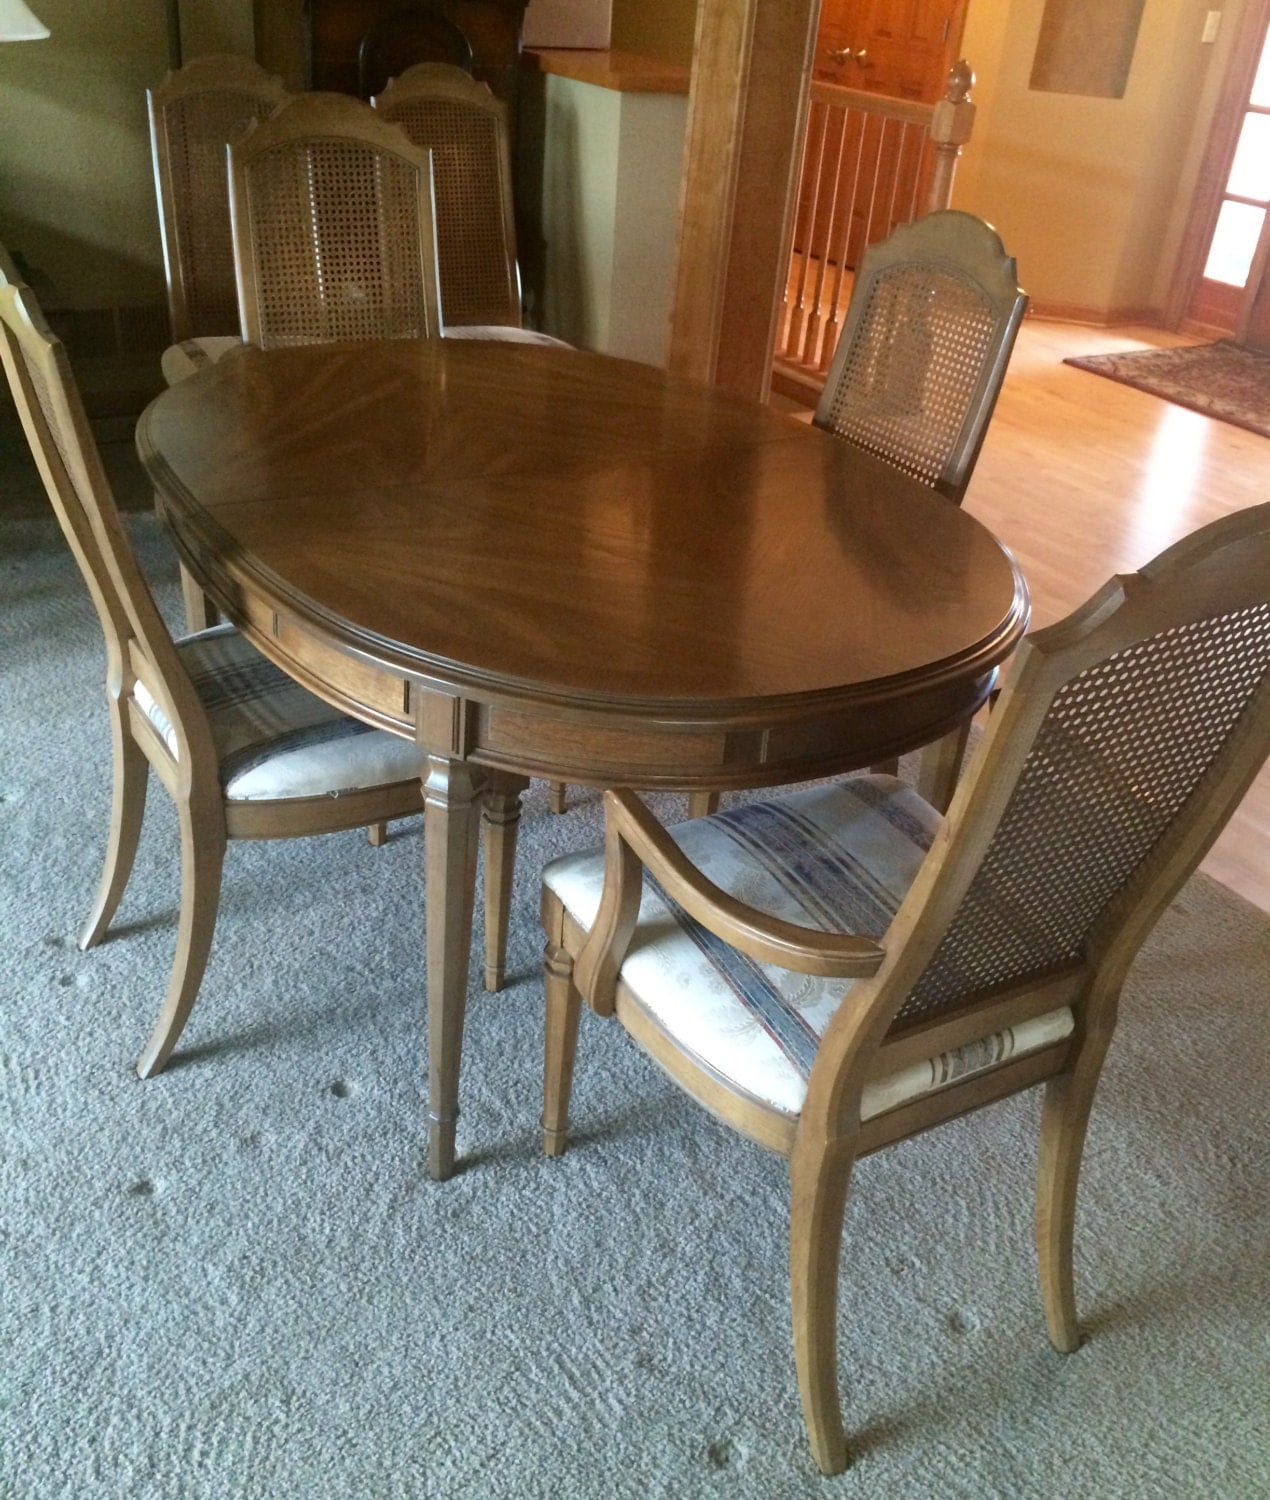 Esperanto drexel dining room set 1960s 6 chairs 3 for Pecan wood furniture dining room